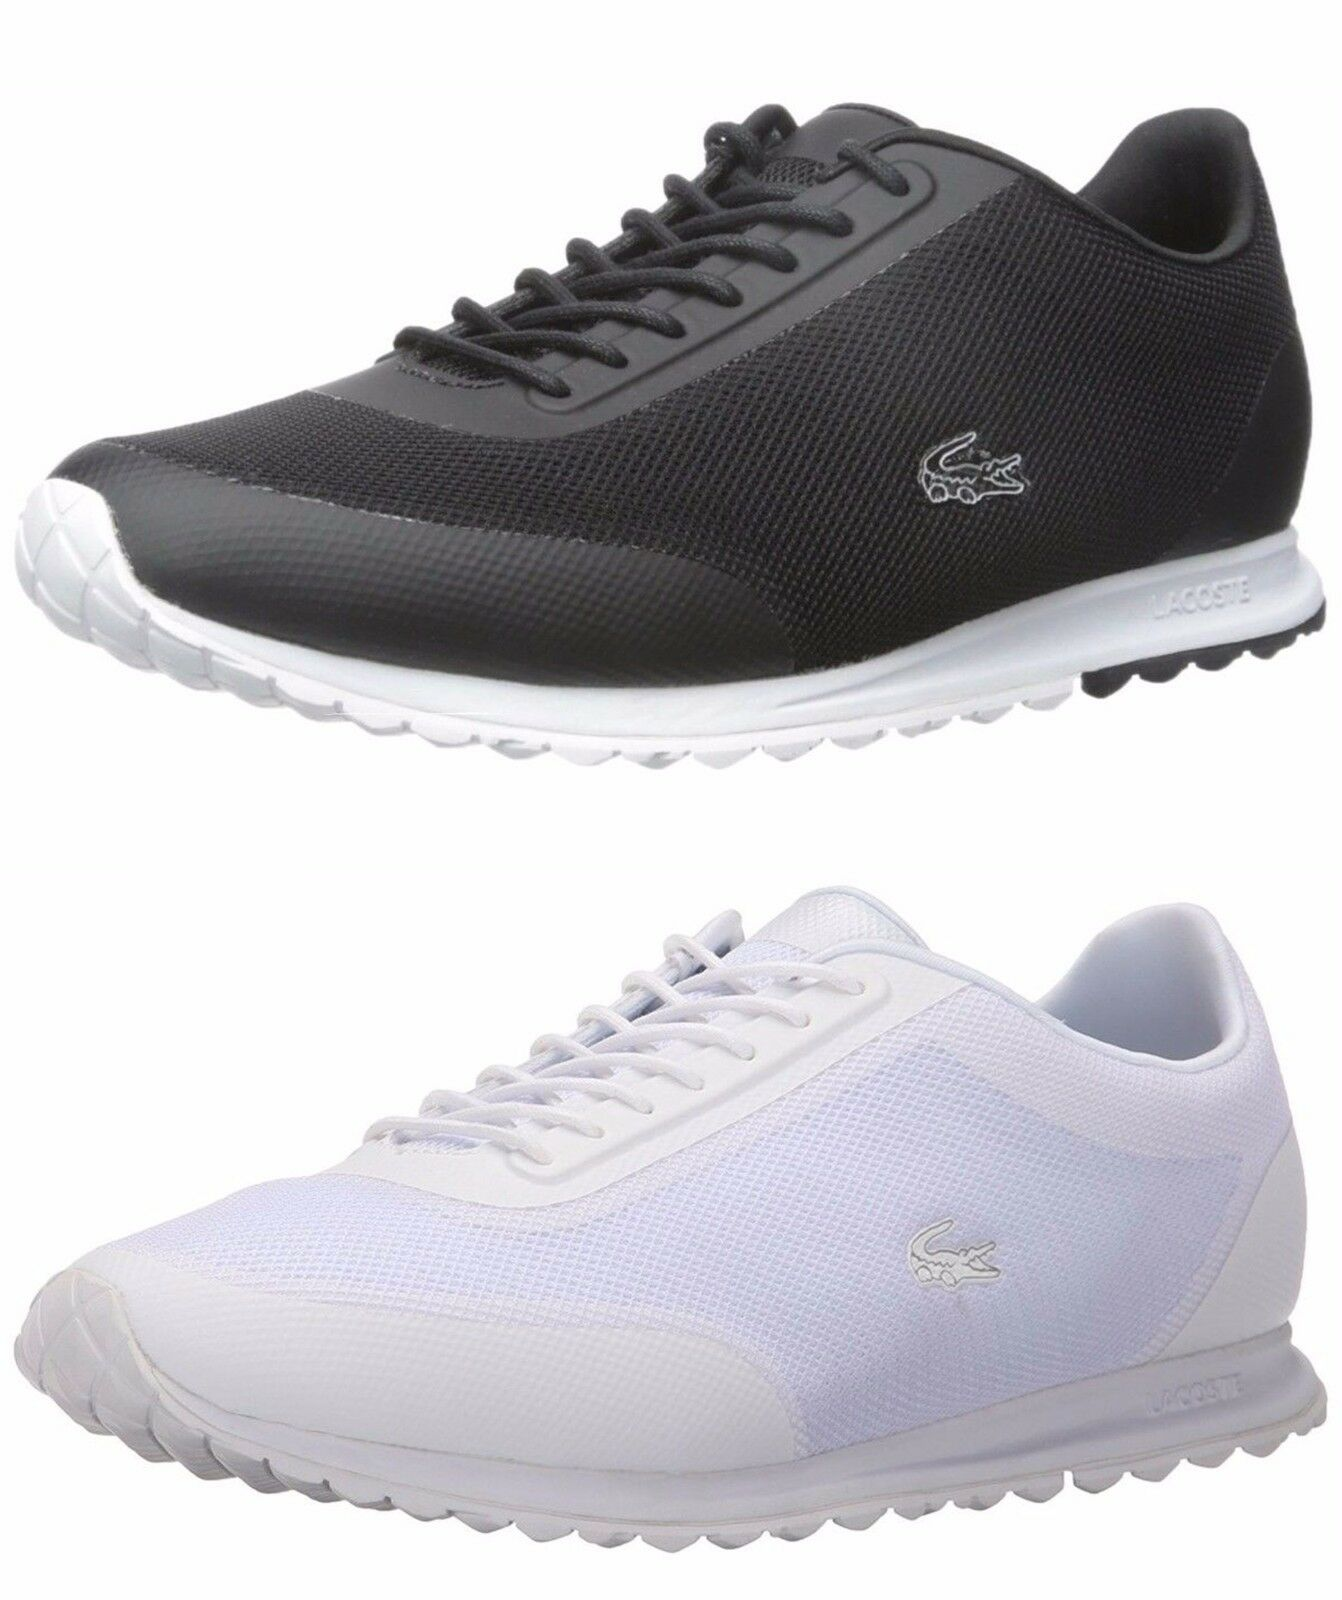 Lacoste Damens Athletic Comfort Schuhes Helaine Runner 116 Fashion Sneakers